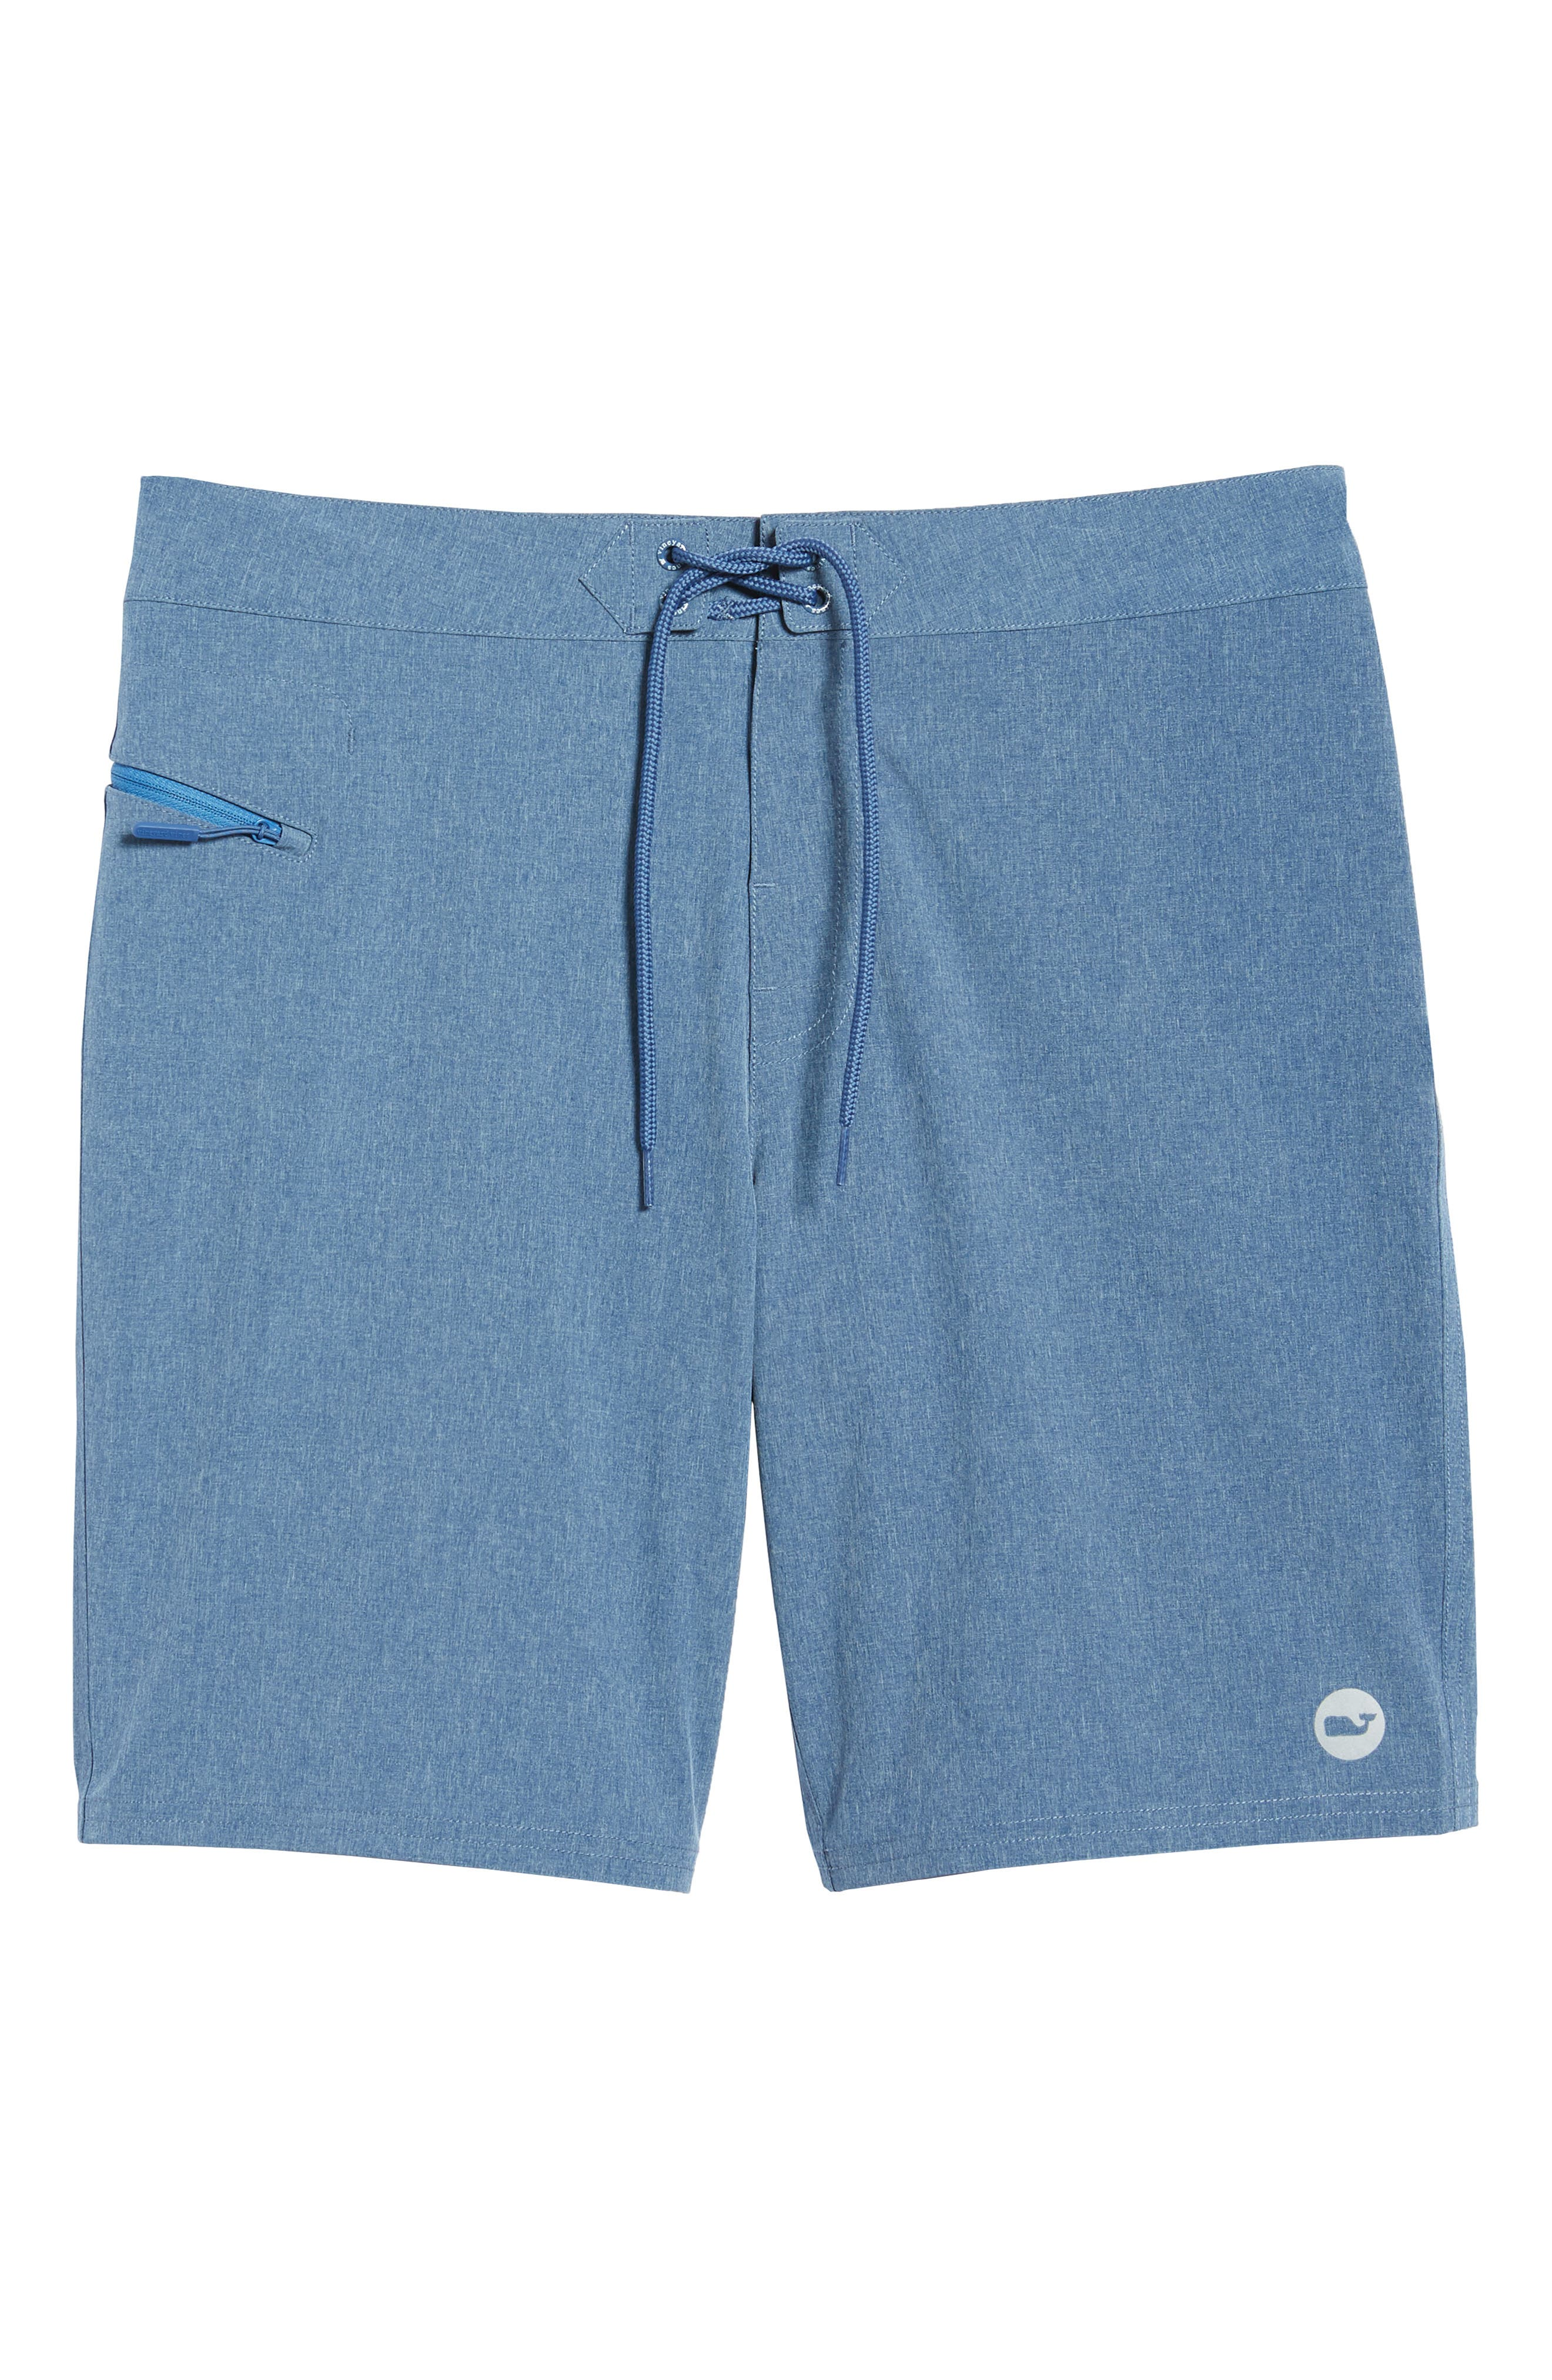 Heather Stretch Board Shorts,                             Alternate thumbnail 6, color,                             461